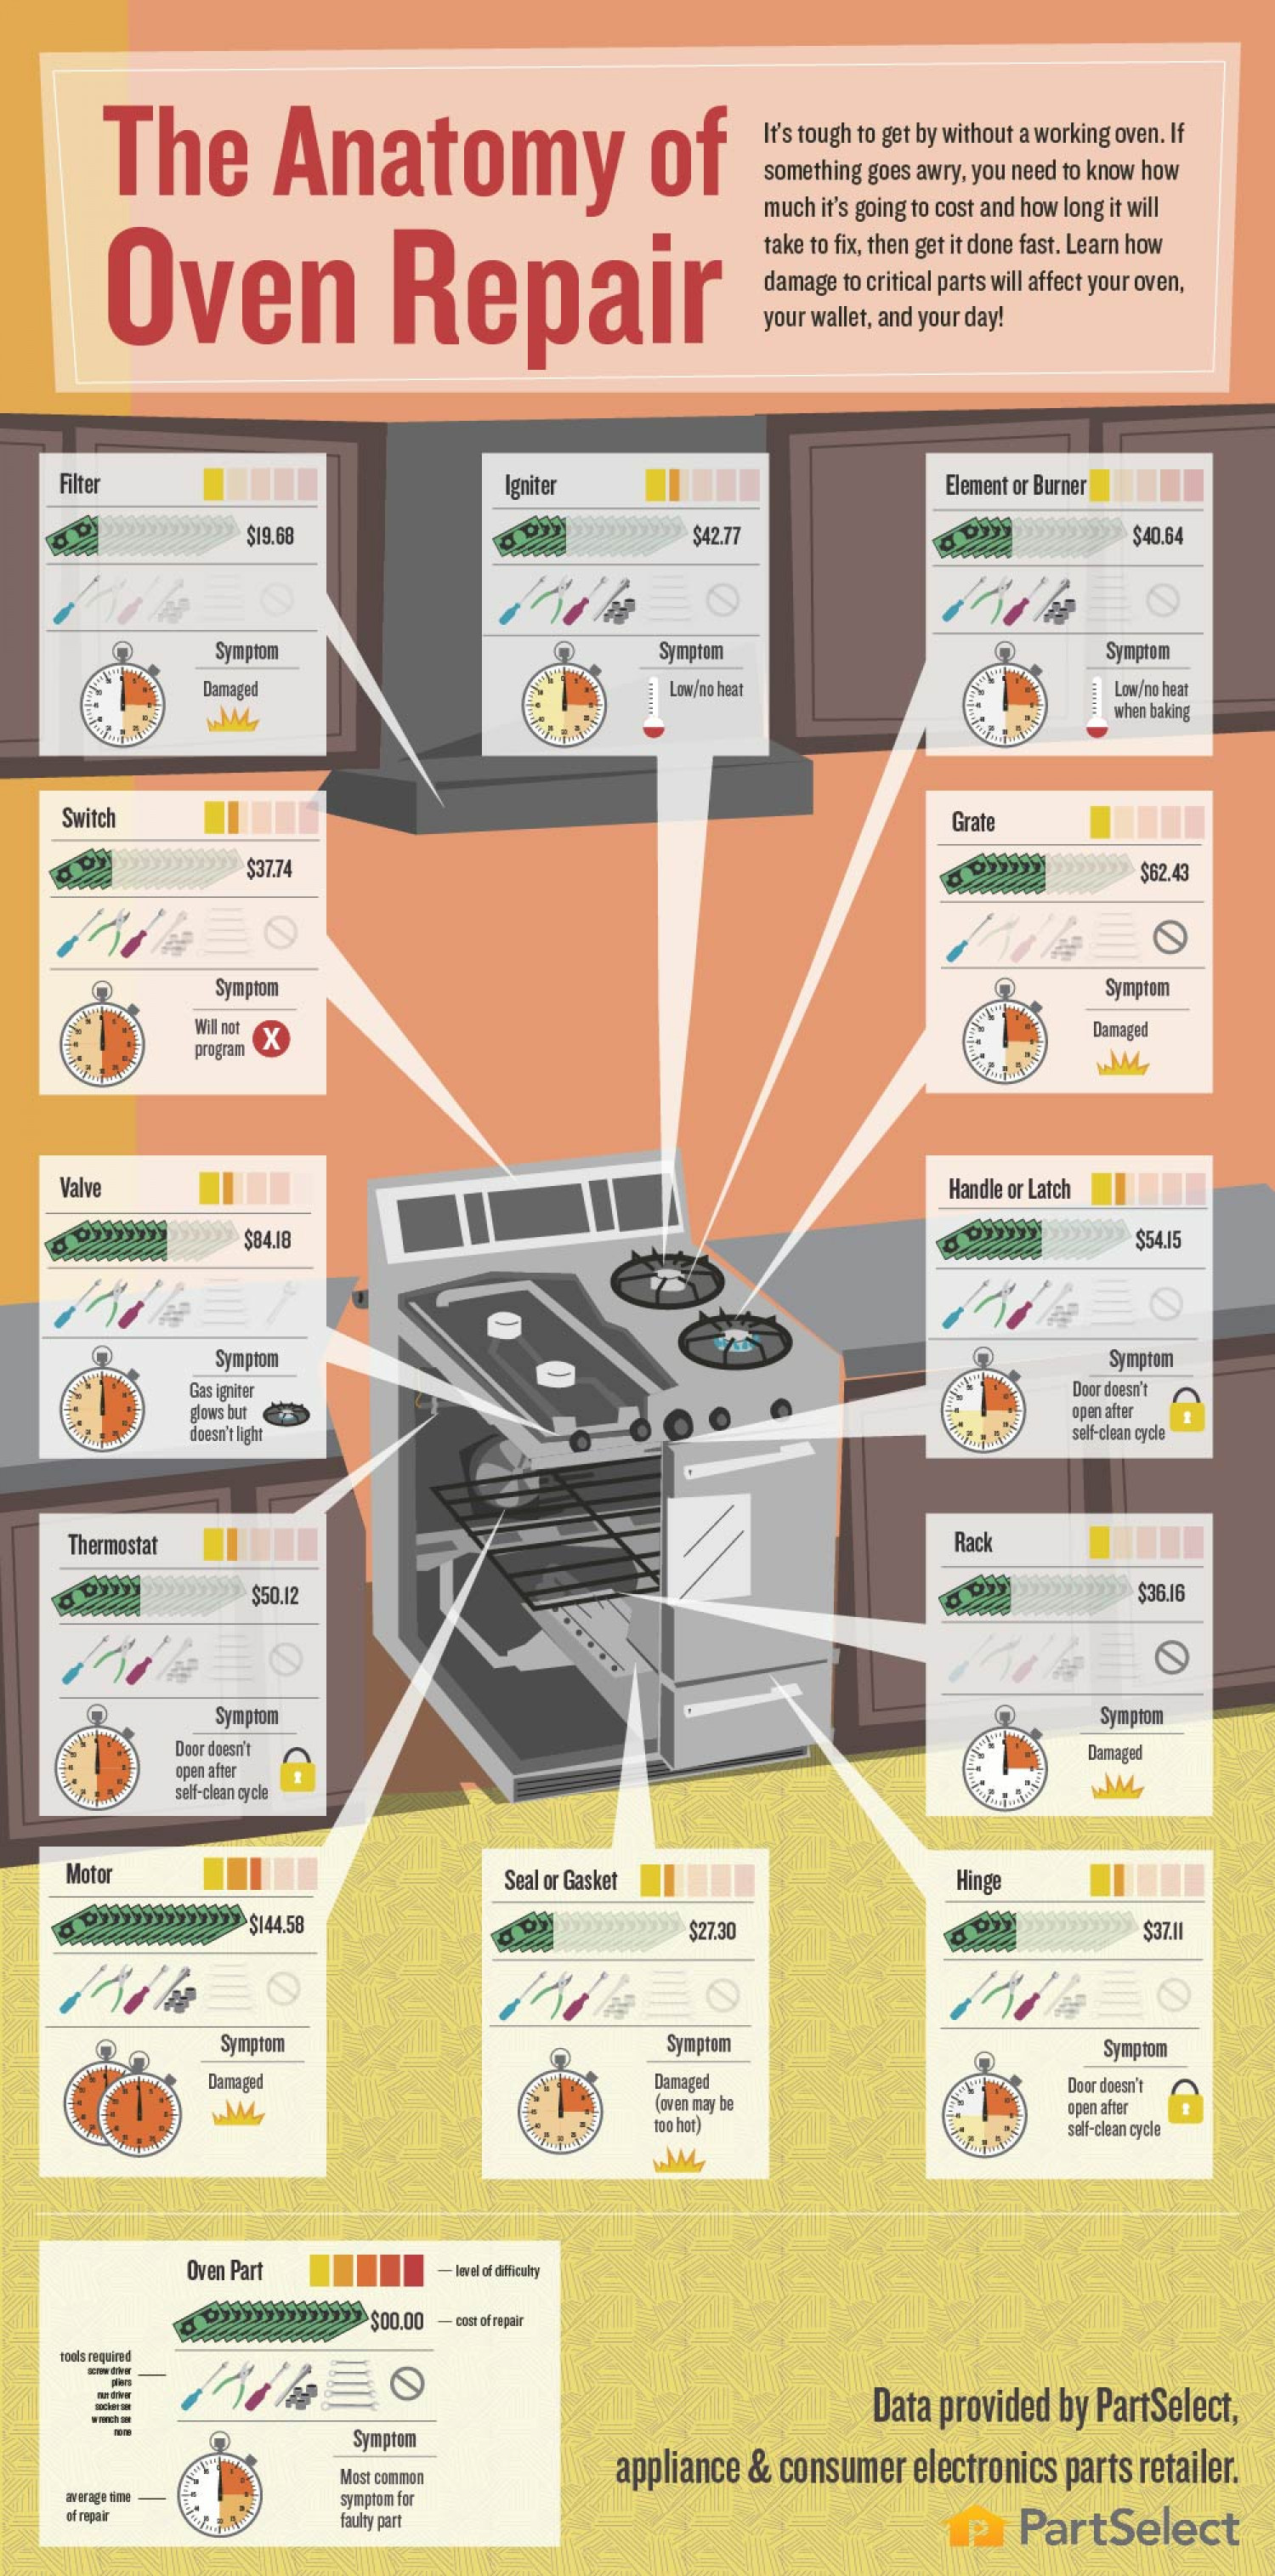 The Anatomy of Oven Repair Infographic